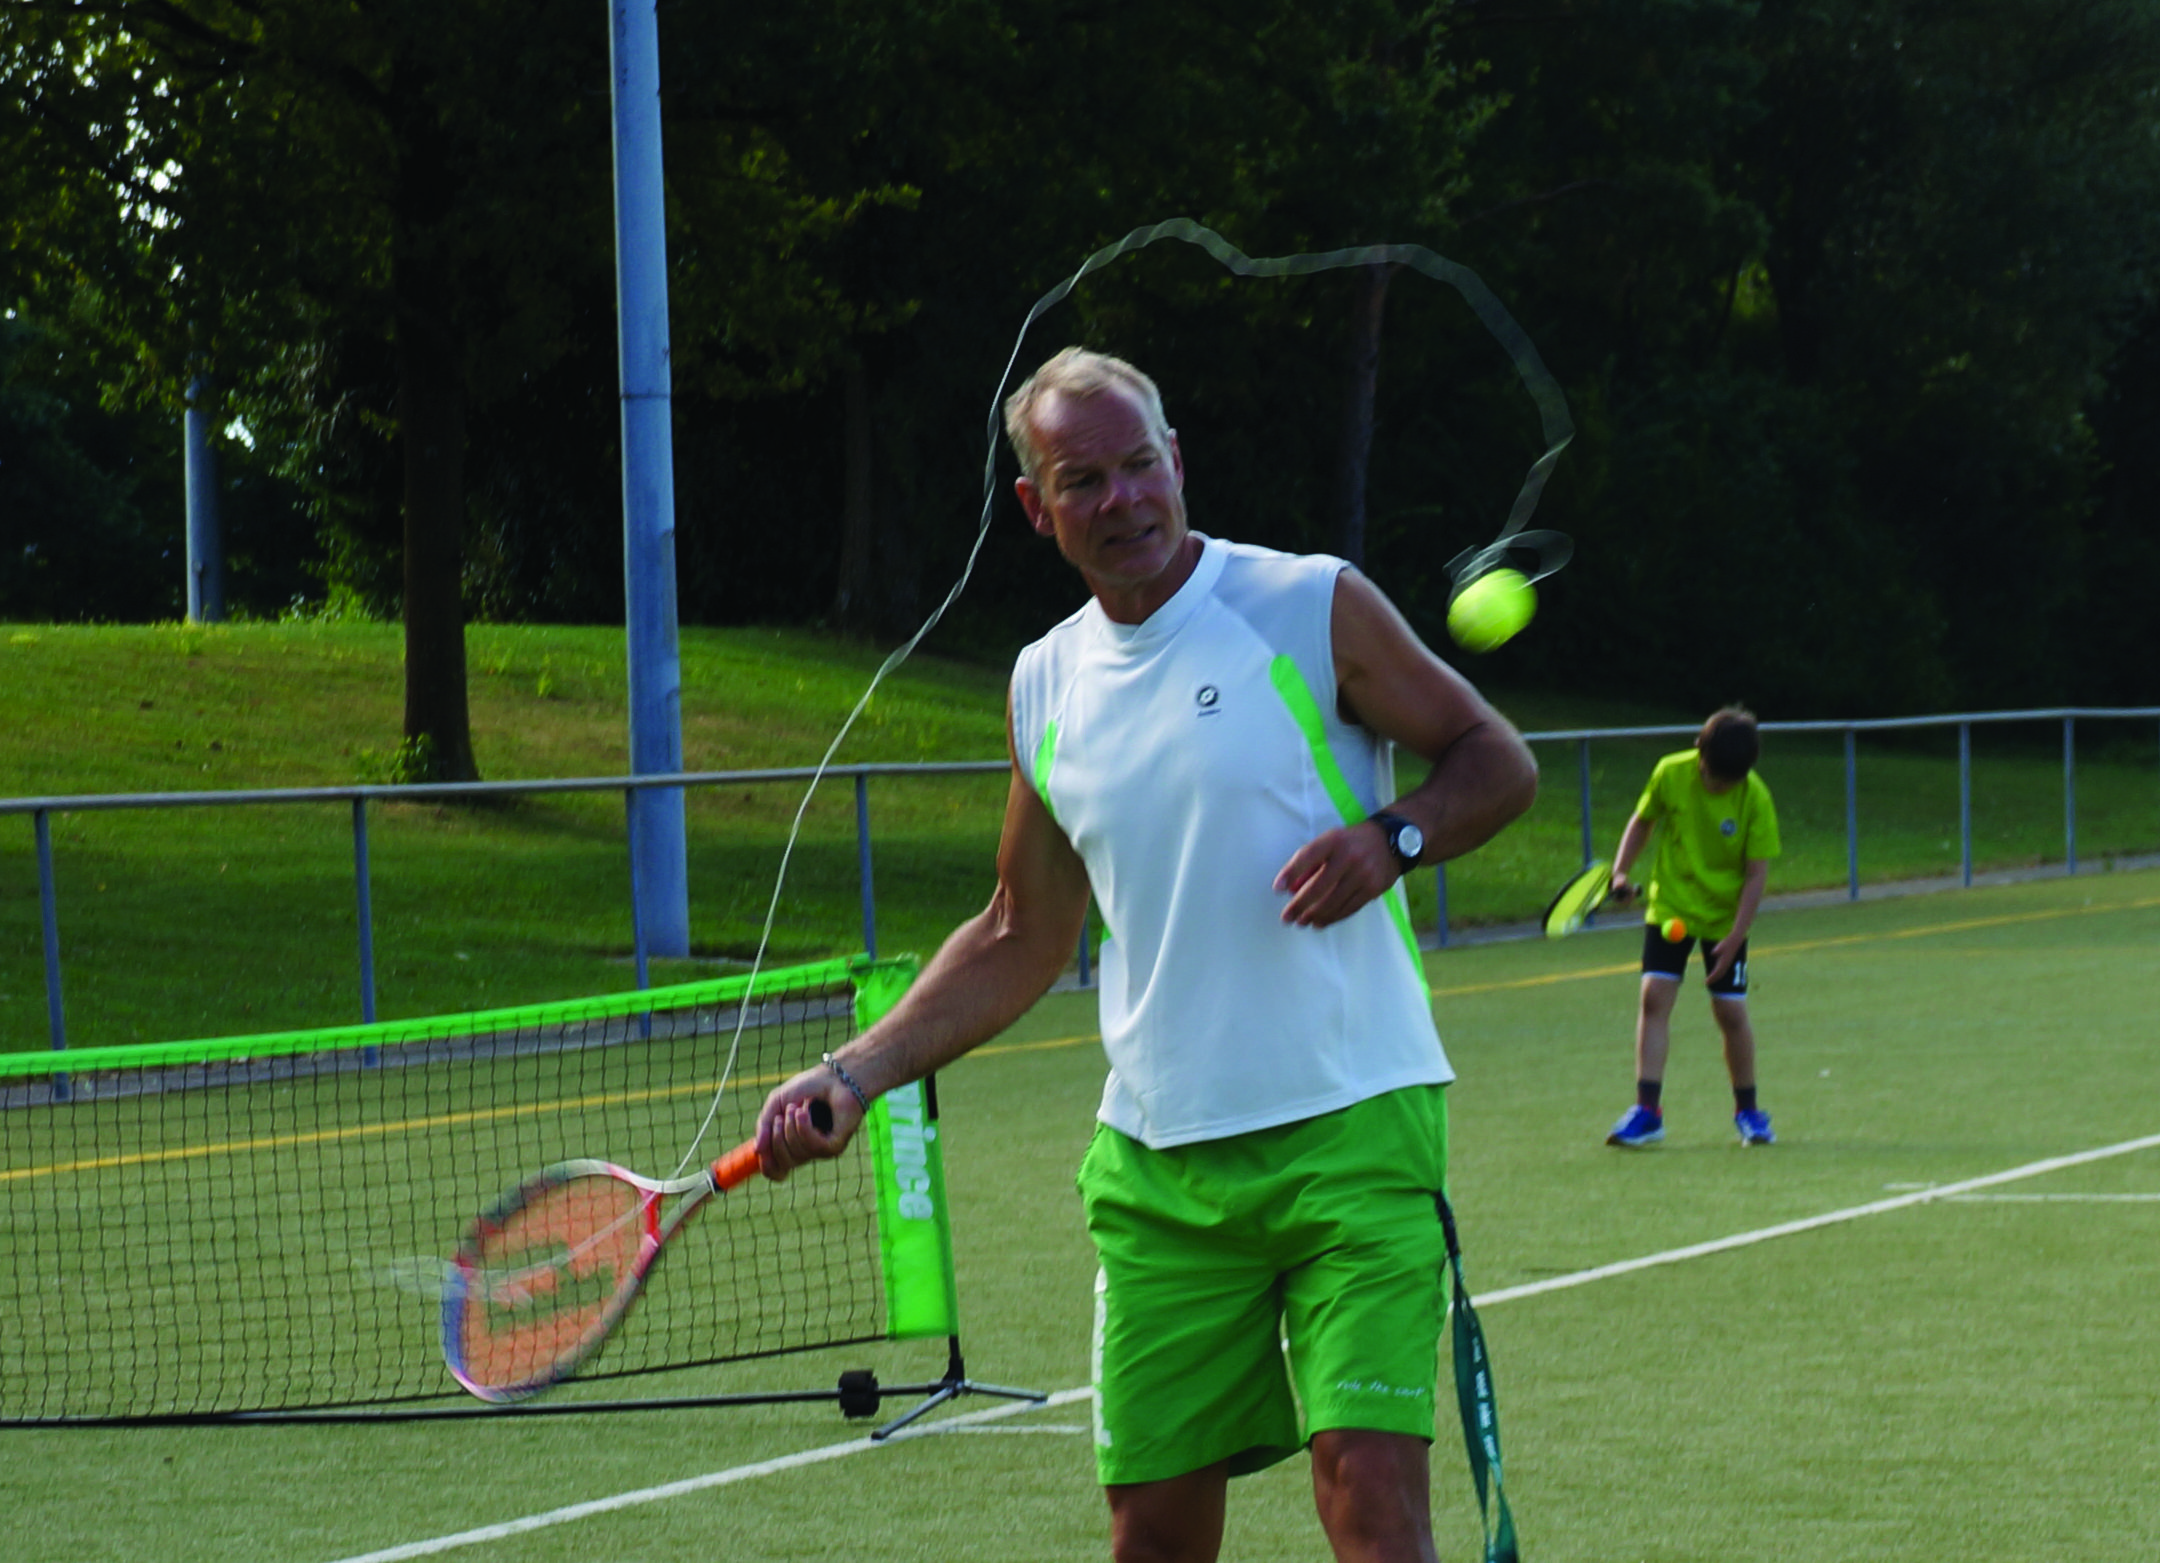 Jens Tenniscamp